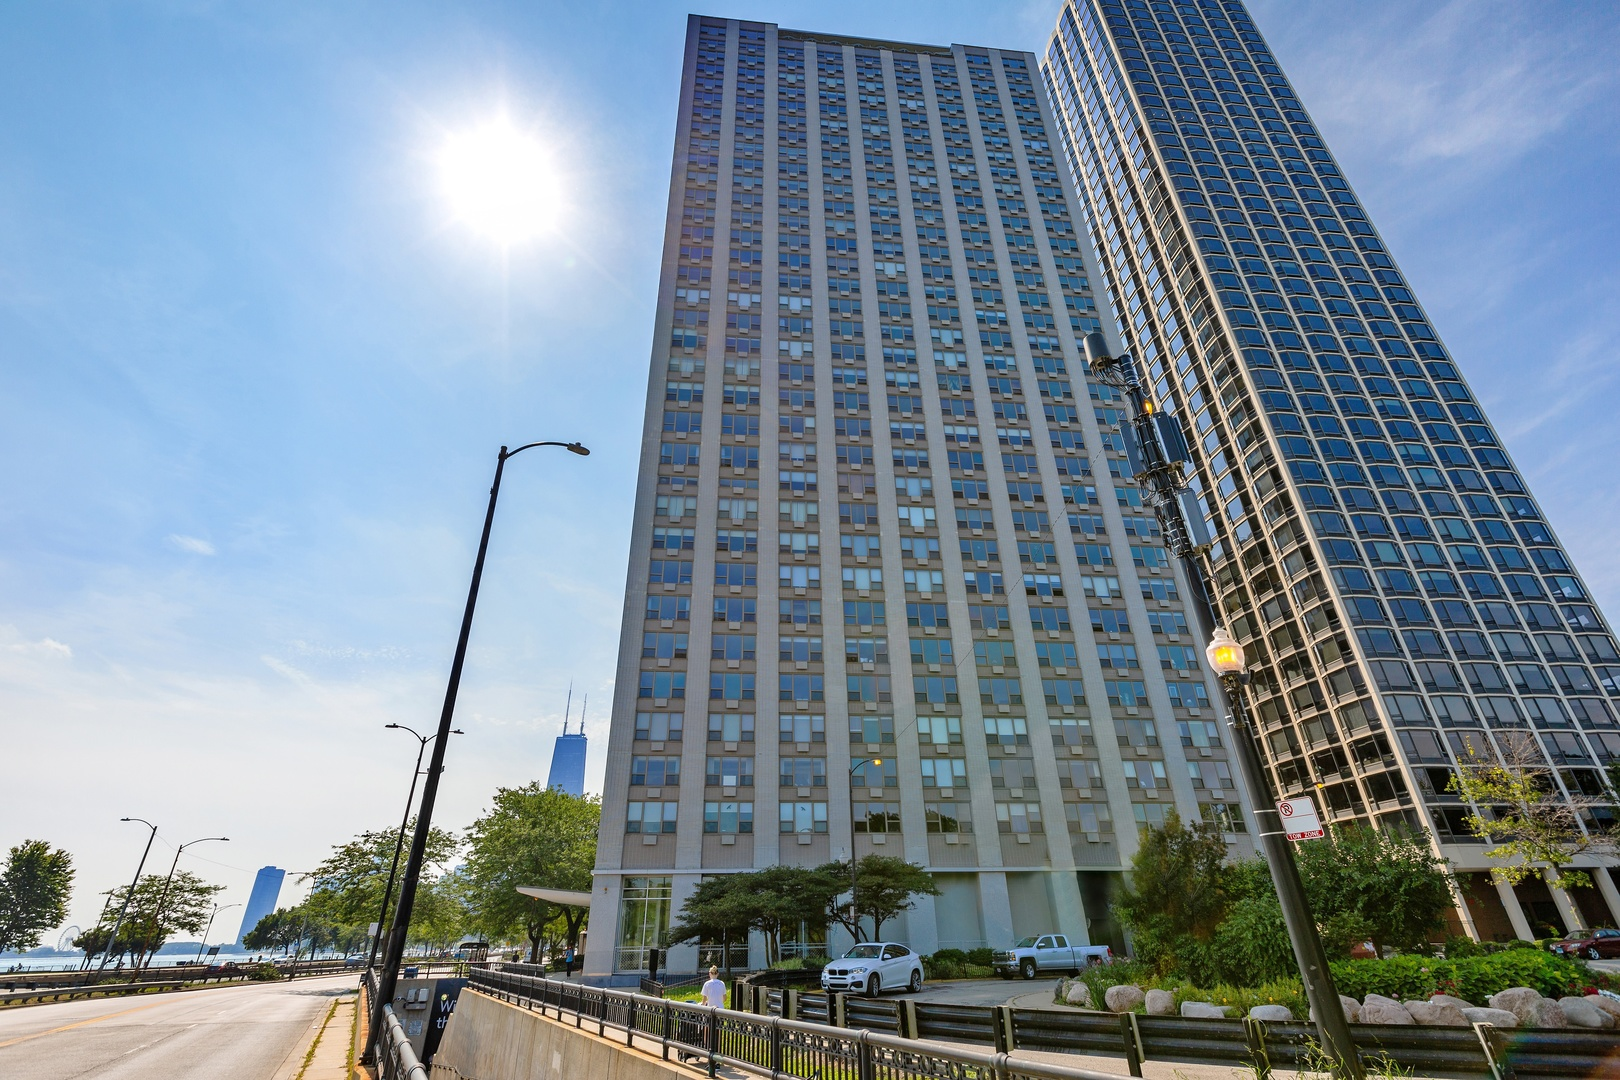 1550 N Lakeshore Drive, Chicago, IL 60610